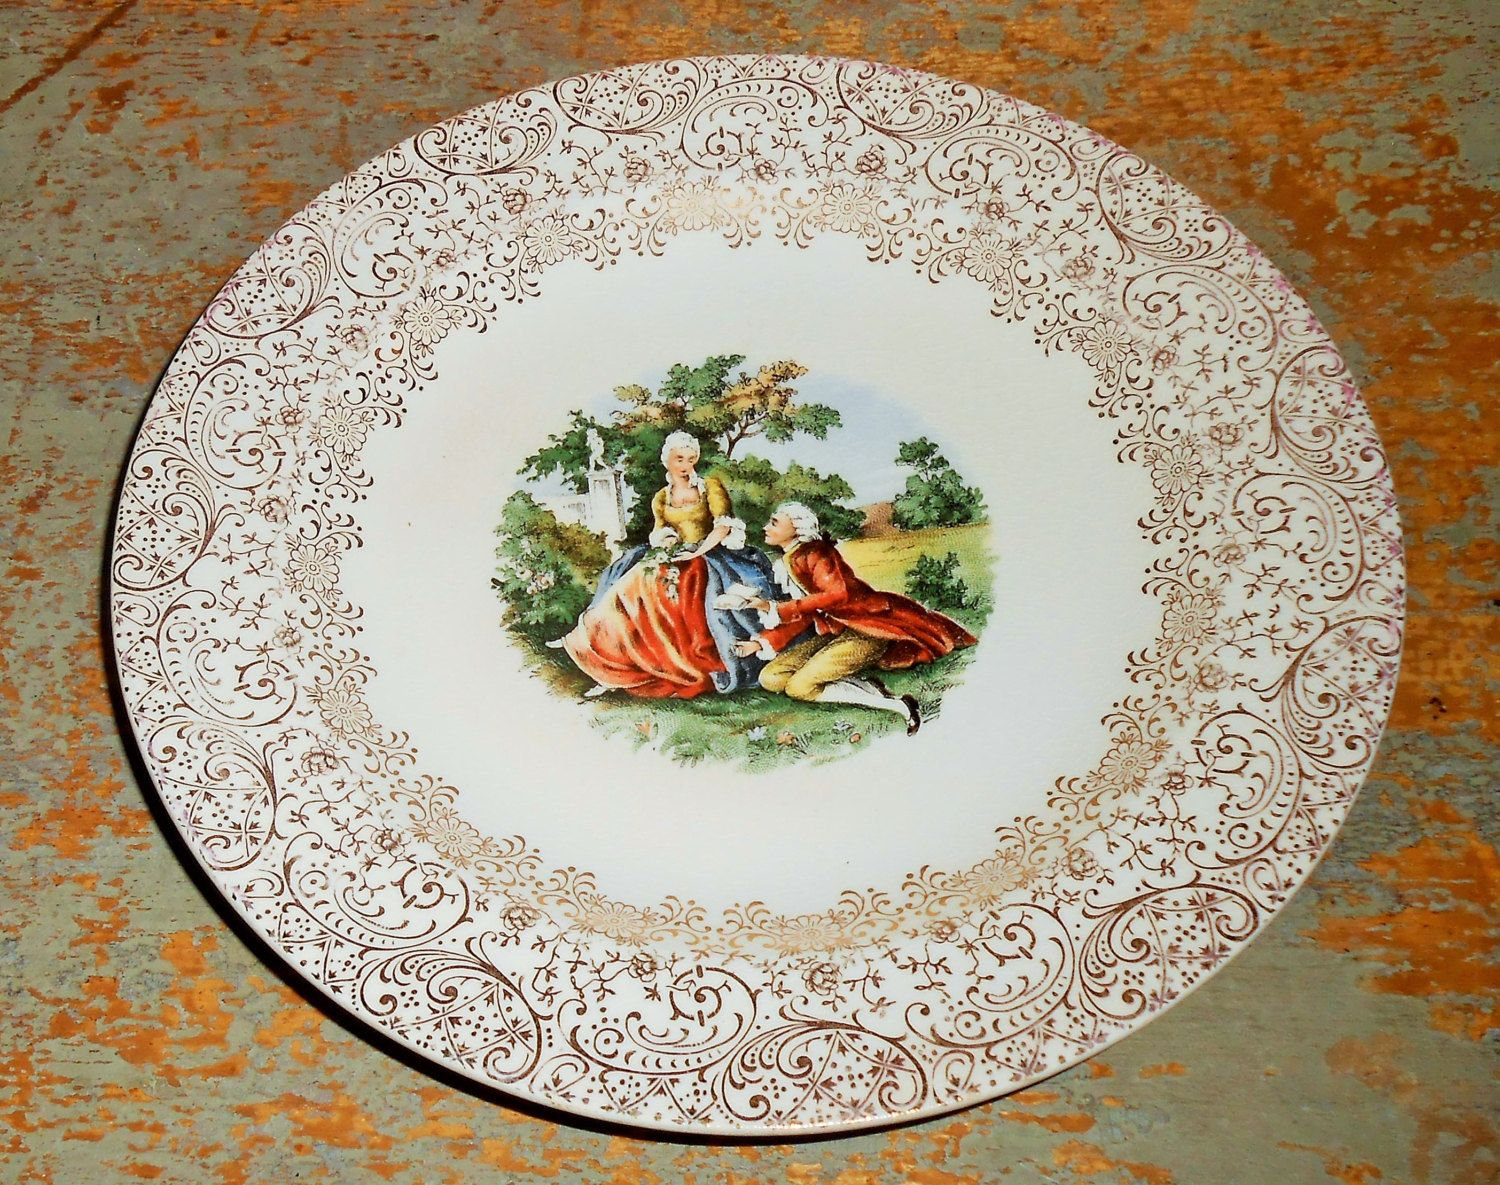 Vintage Plate, Royal China, Colonial Gold, 22 K, Warranted Gold ...